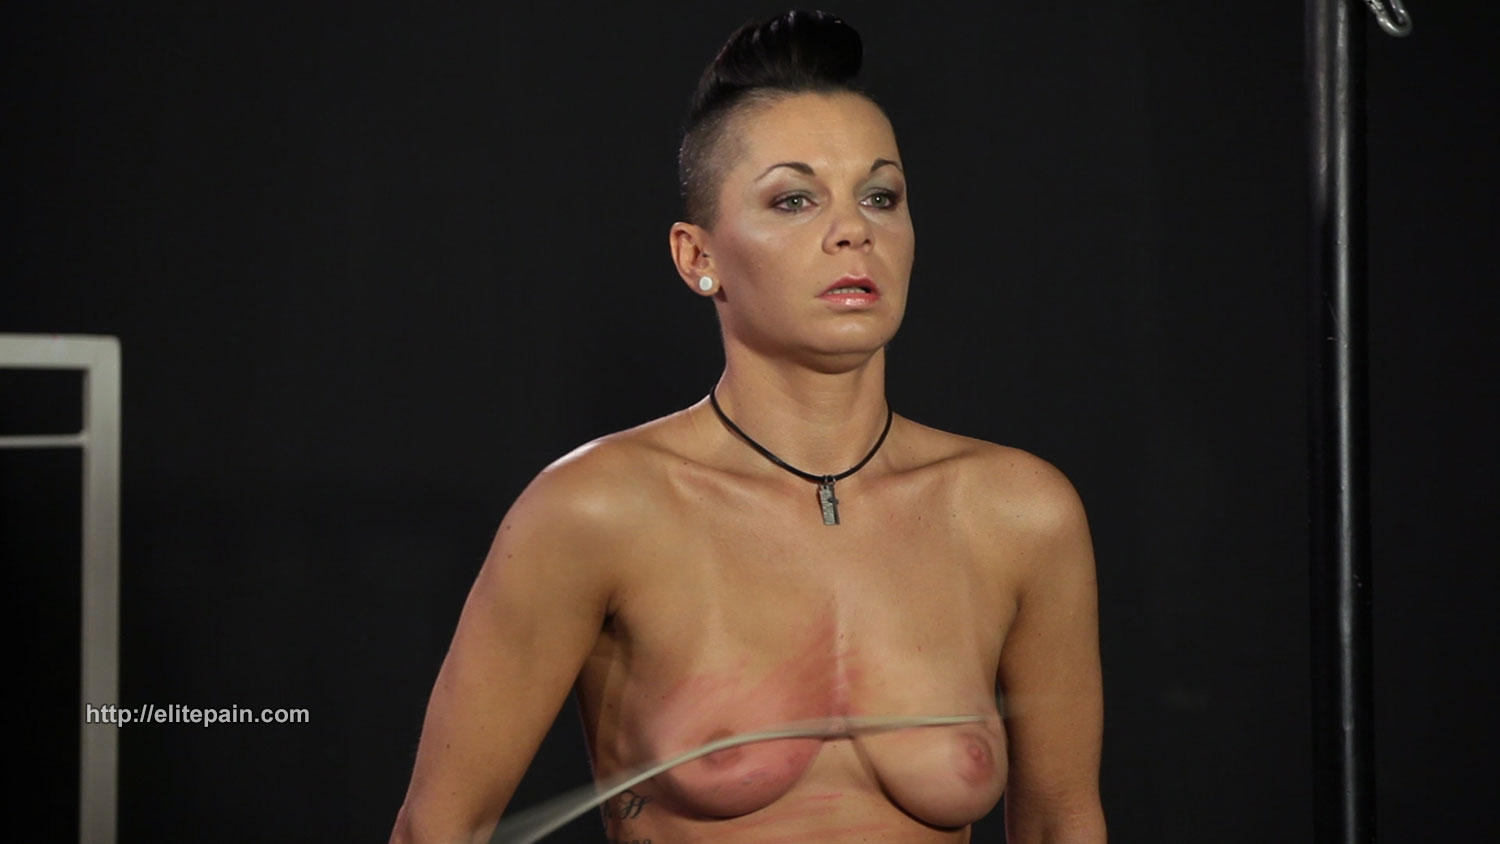 Spank whipped pain trailers just awesome!